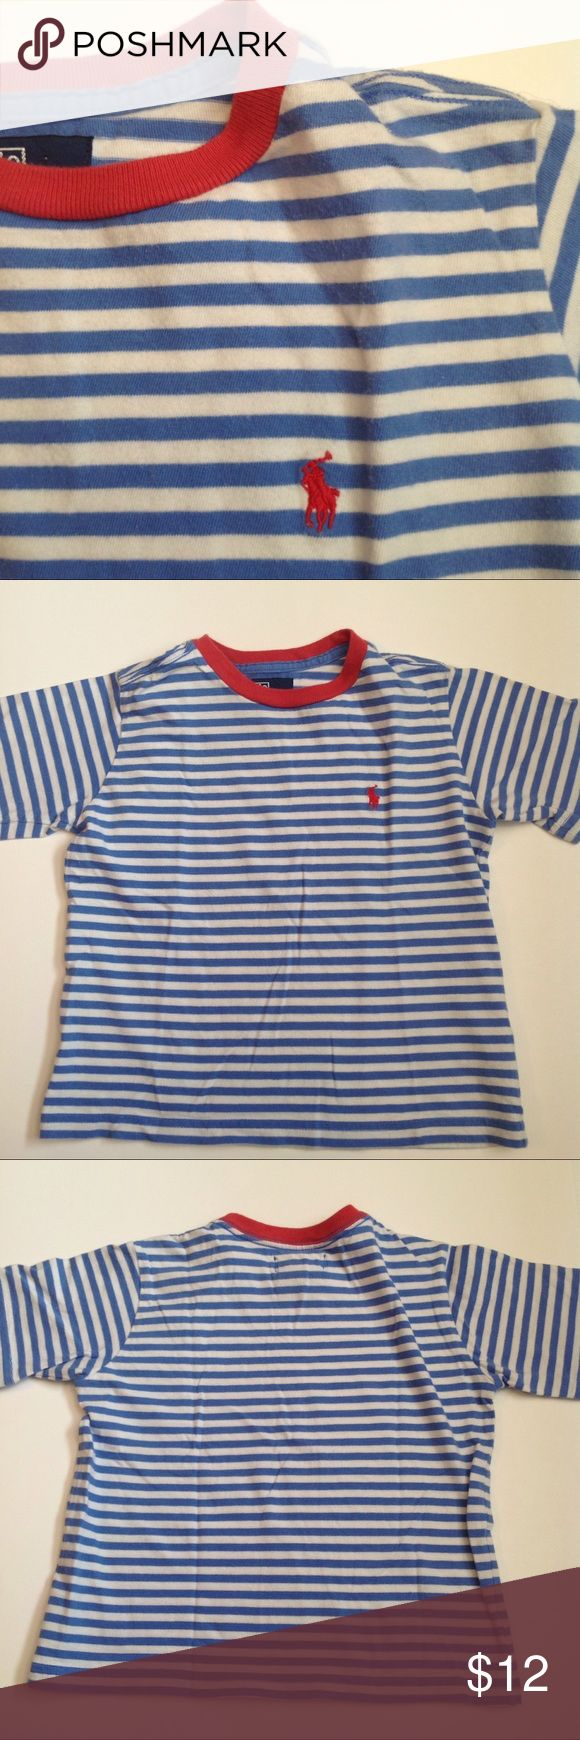 POLO RALPH LAUREN * BOYS * STRIPED TEE * SIZE 5 Update your little one's summer wardrobe with this classic 100% cotton striped short sleeve crew neck tee.  Machine wash.  Embroidered pony logo. Polo by Ralph Lauren Shirts & Tops Tees - Short Sleeve